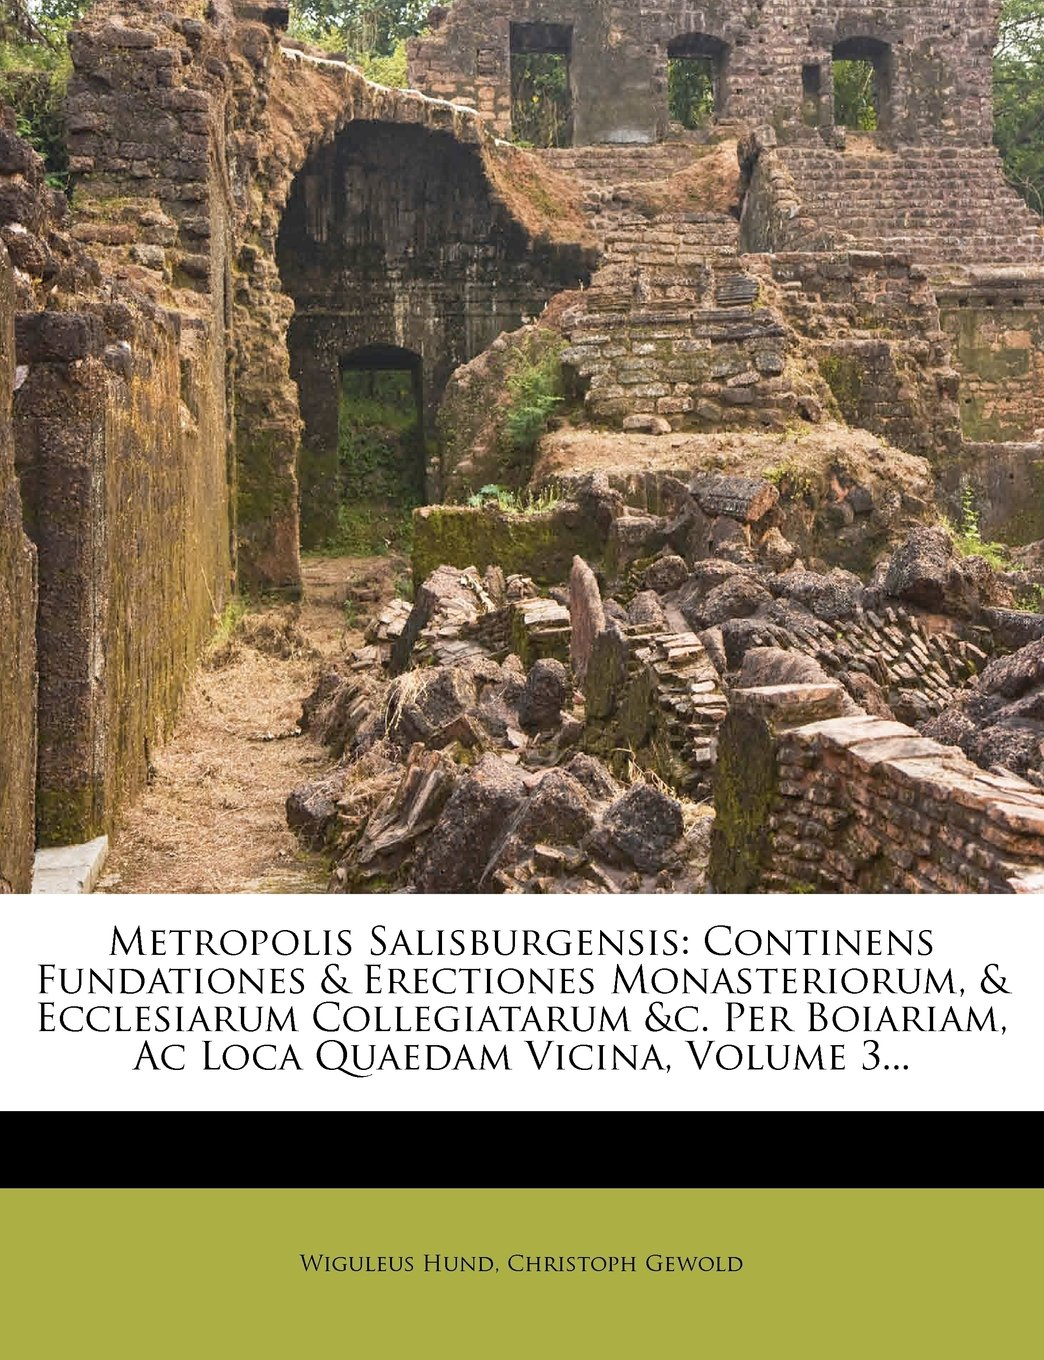 Download Metropolis Salisburgensis: Continens Fundationes & Erectiones Monasteriorum, & Ecclesiarum Collegiatarum &C. Per Boiariam, AC Loca Quaedam Vicina (Latin Edition) pdf